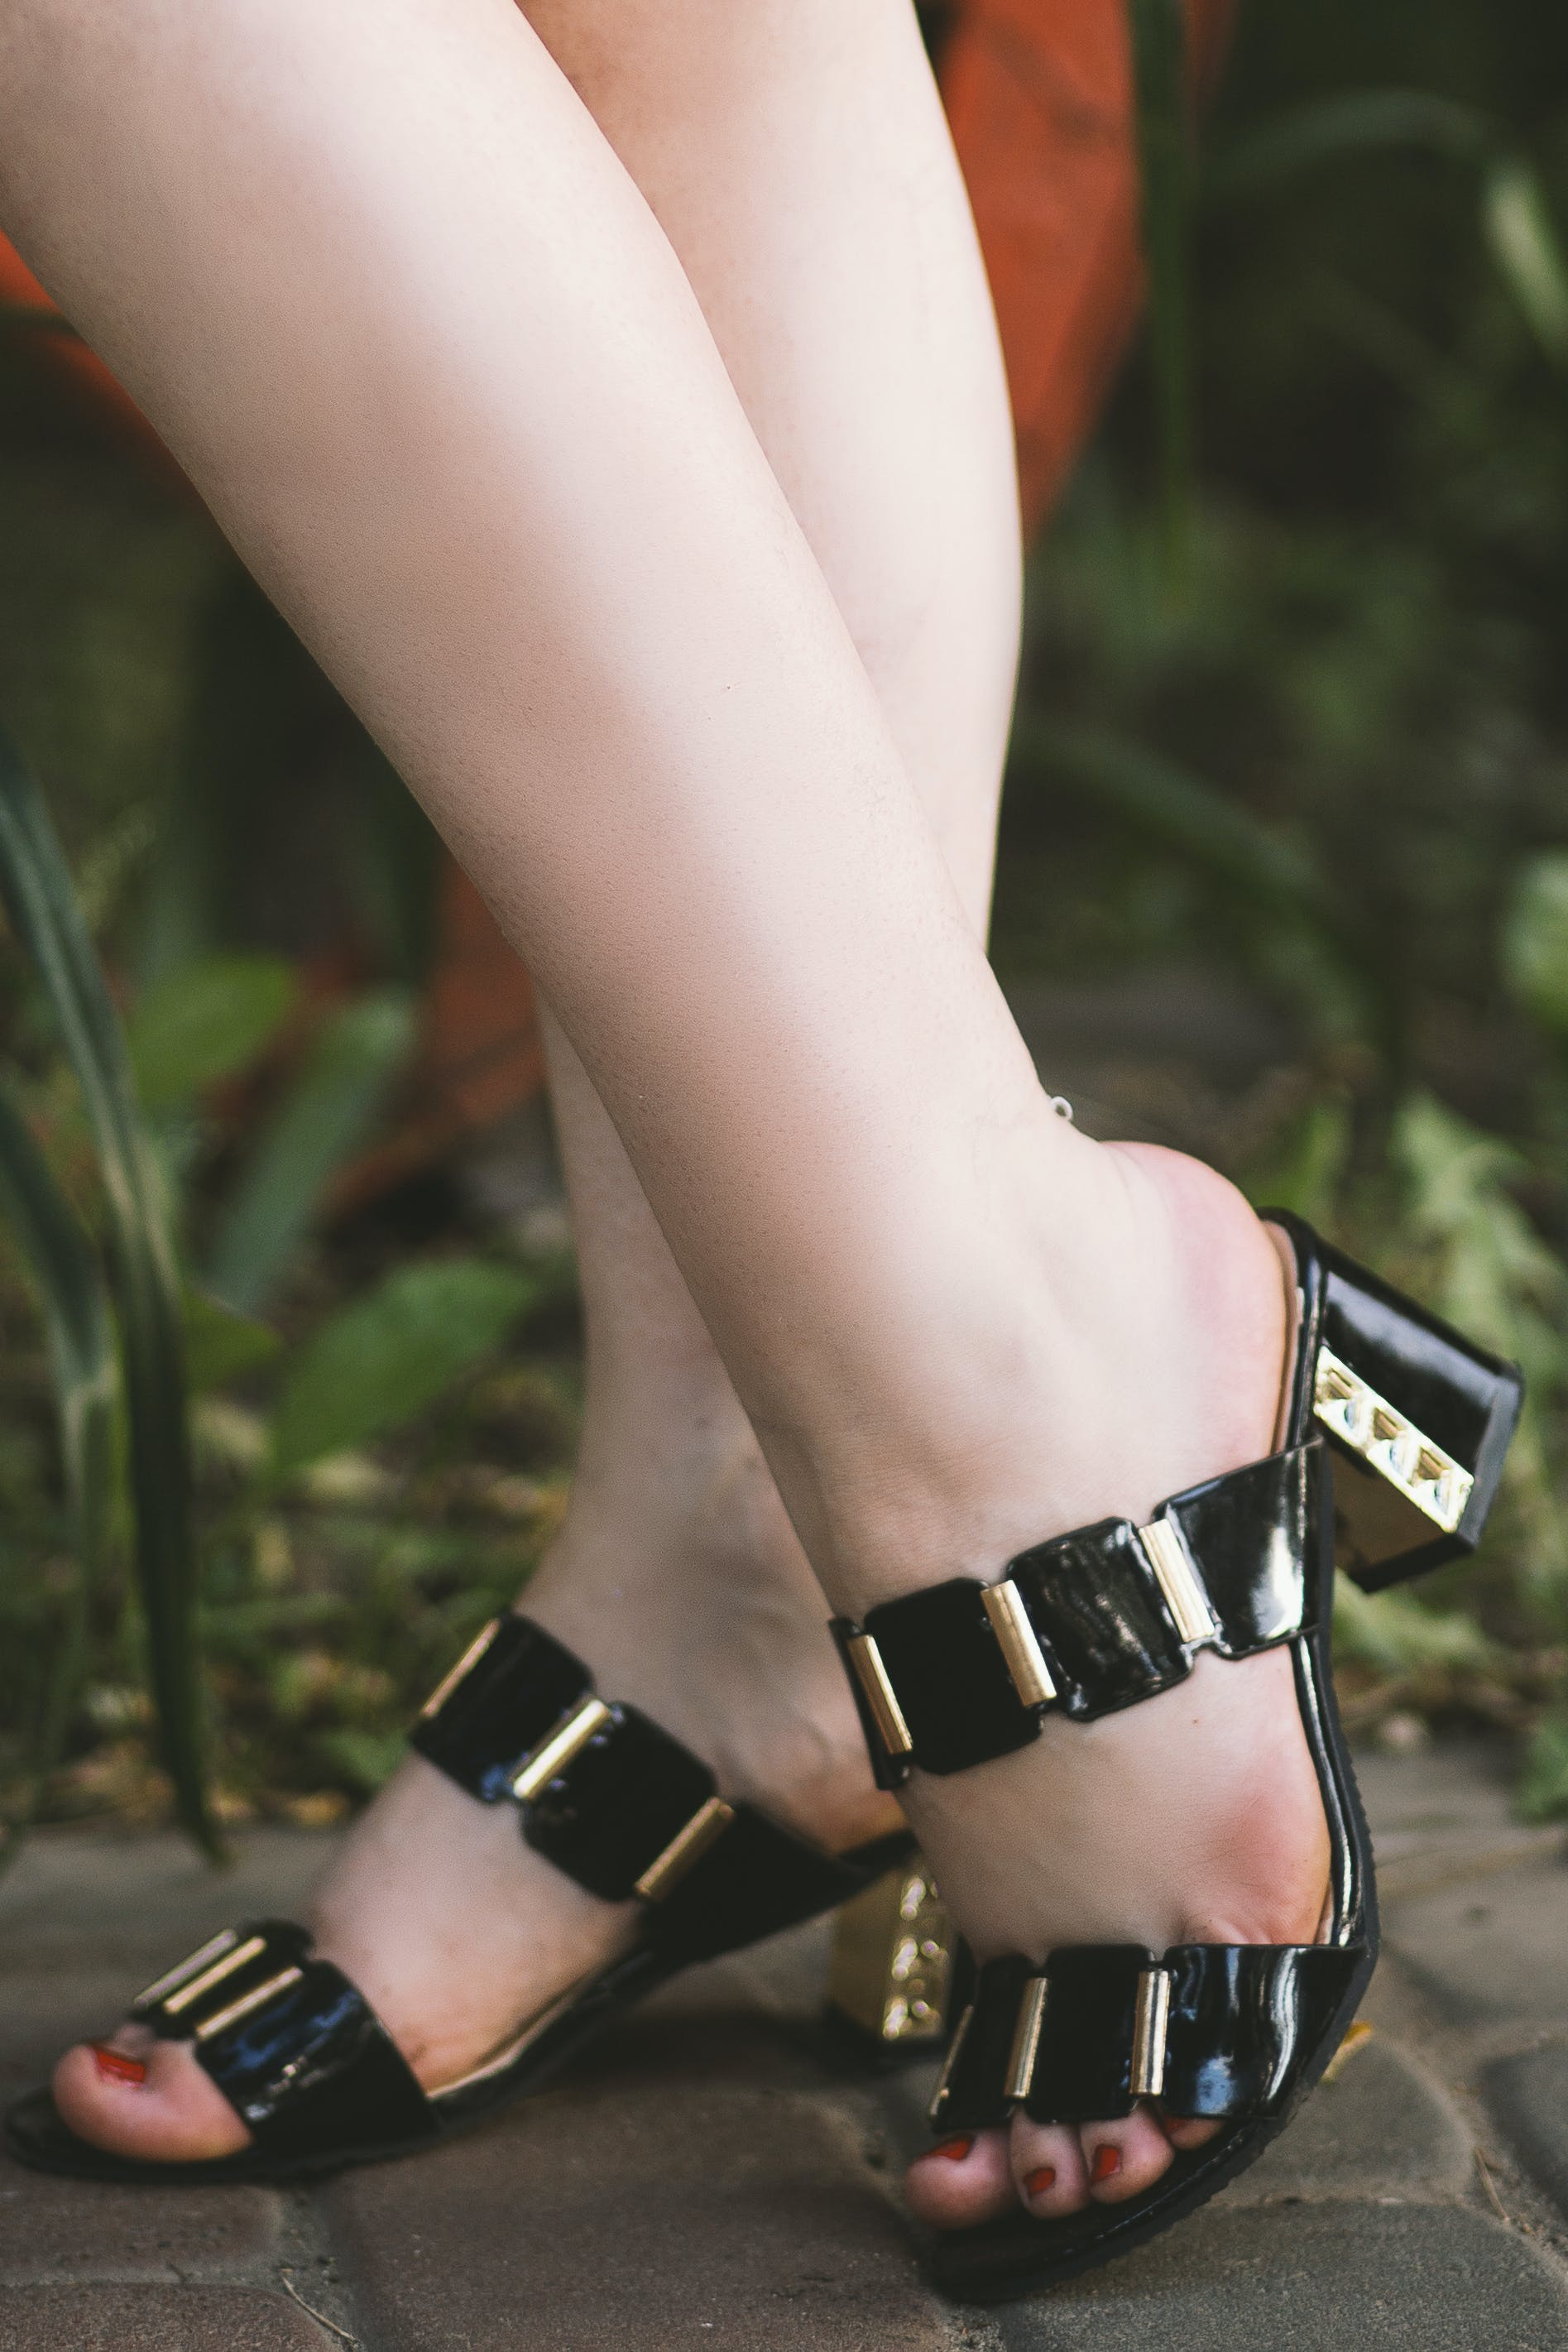 Woman Wearing Pair of Black-and-gold Open-toe Sandals